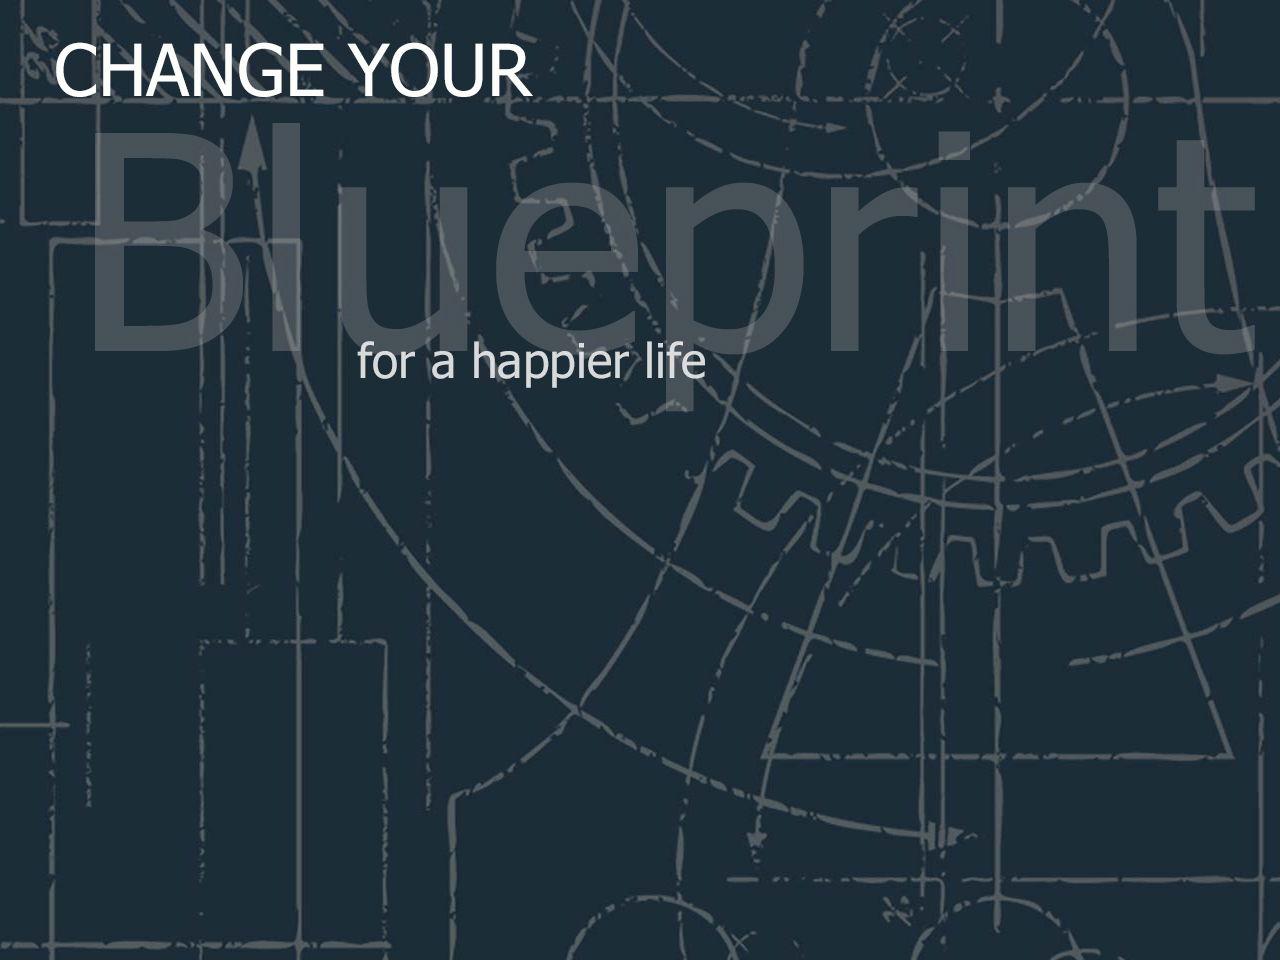 Blueprint for a happier life